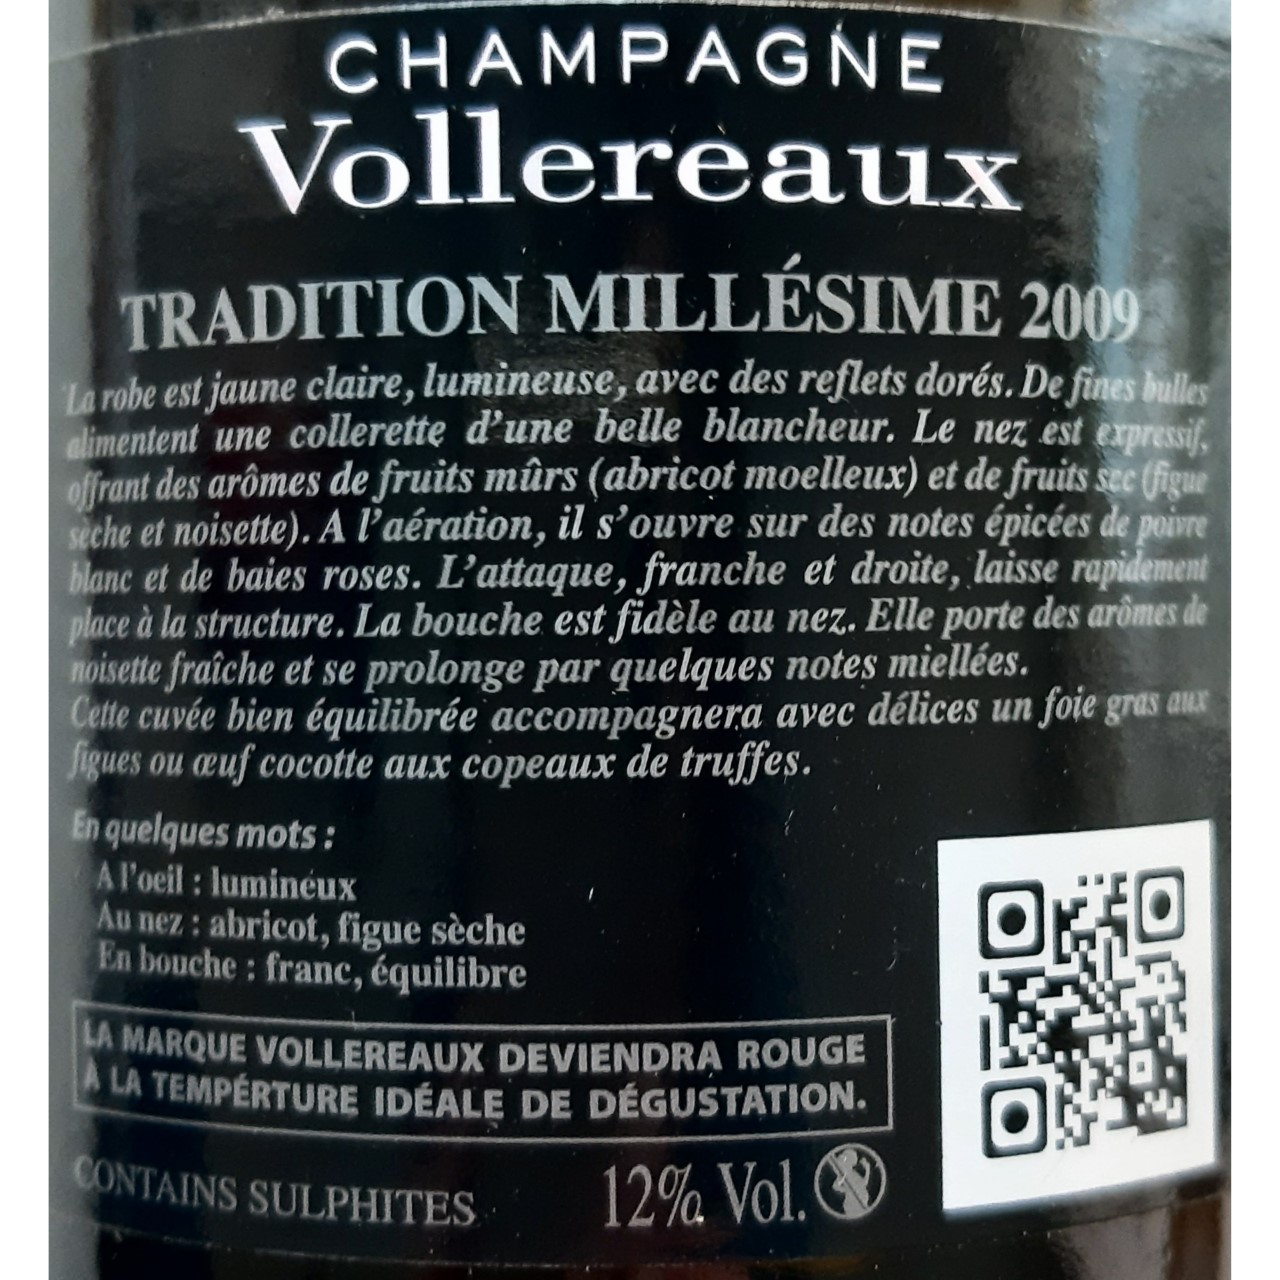 Champagne Vollereaux Brut Tradition Millesime 2009